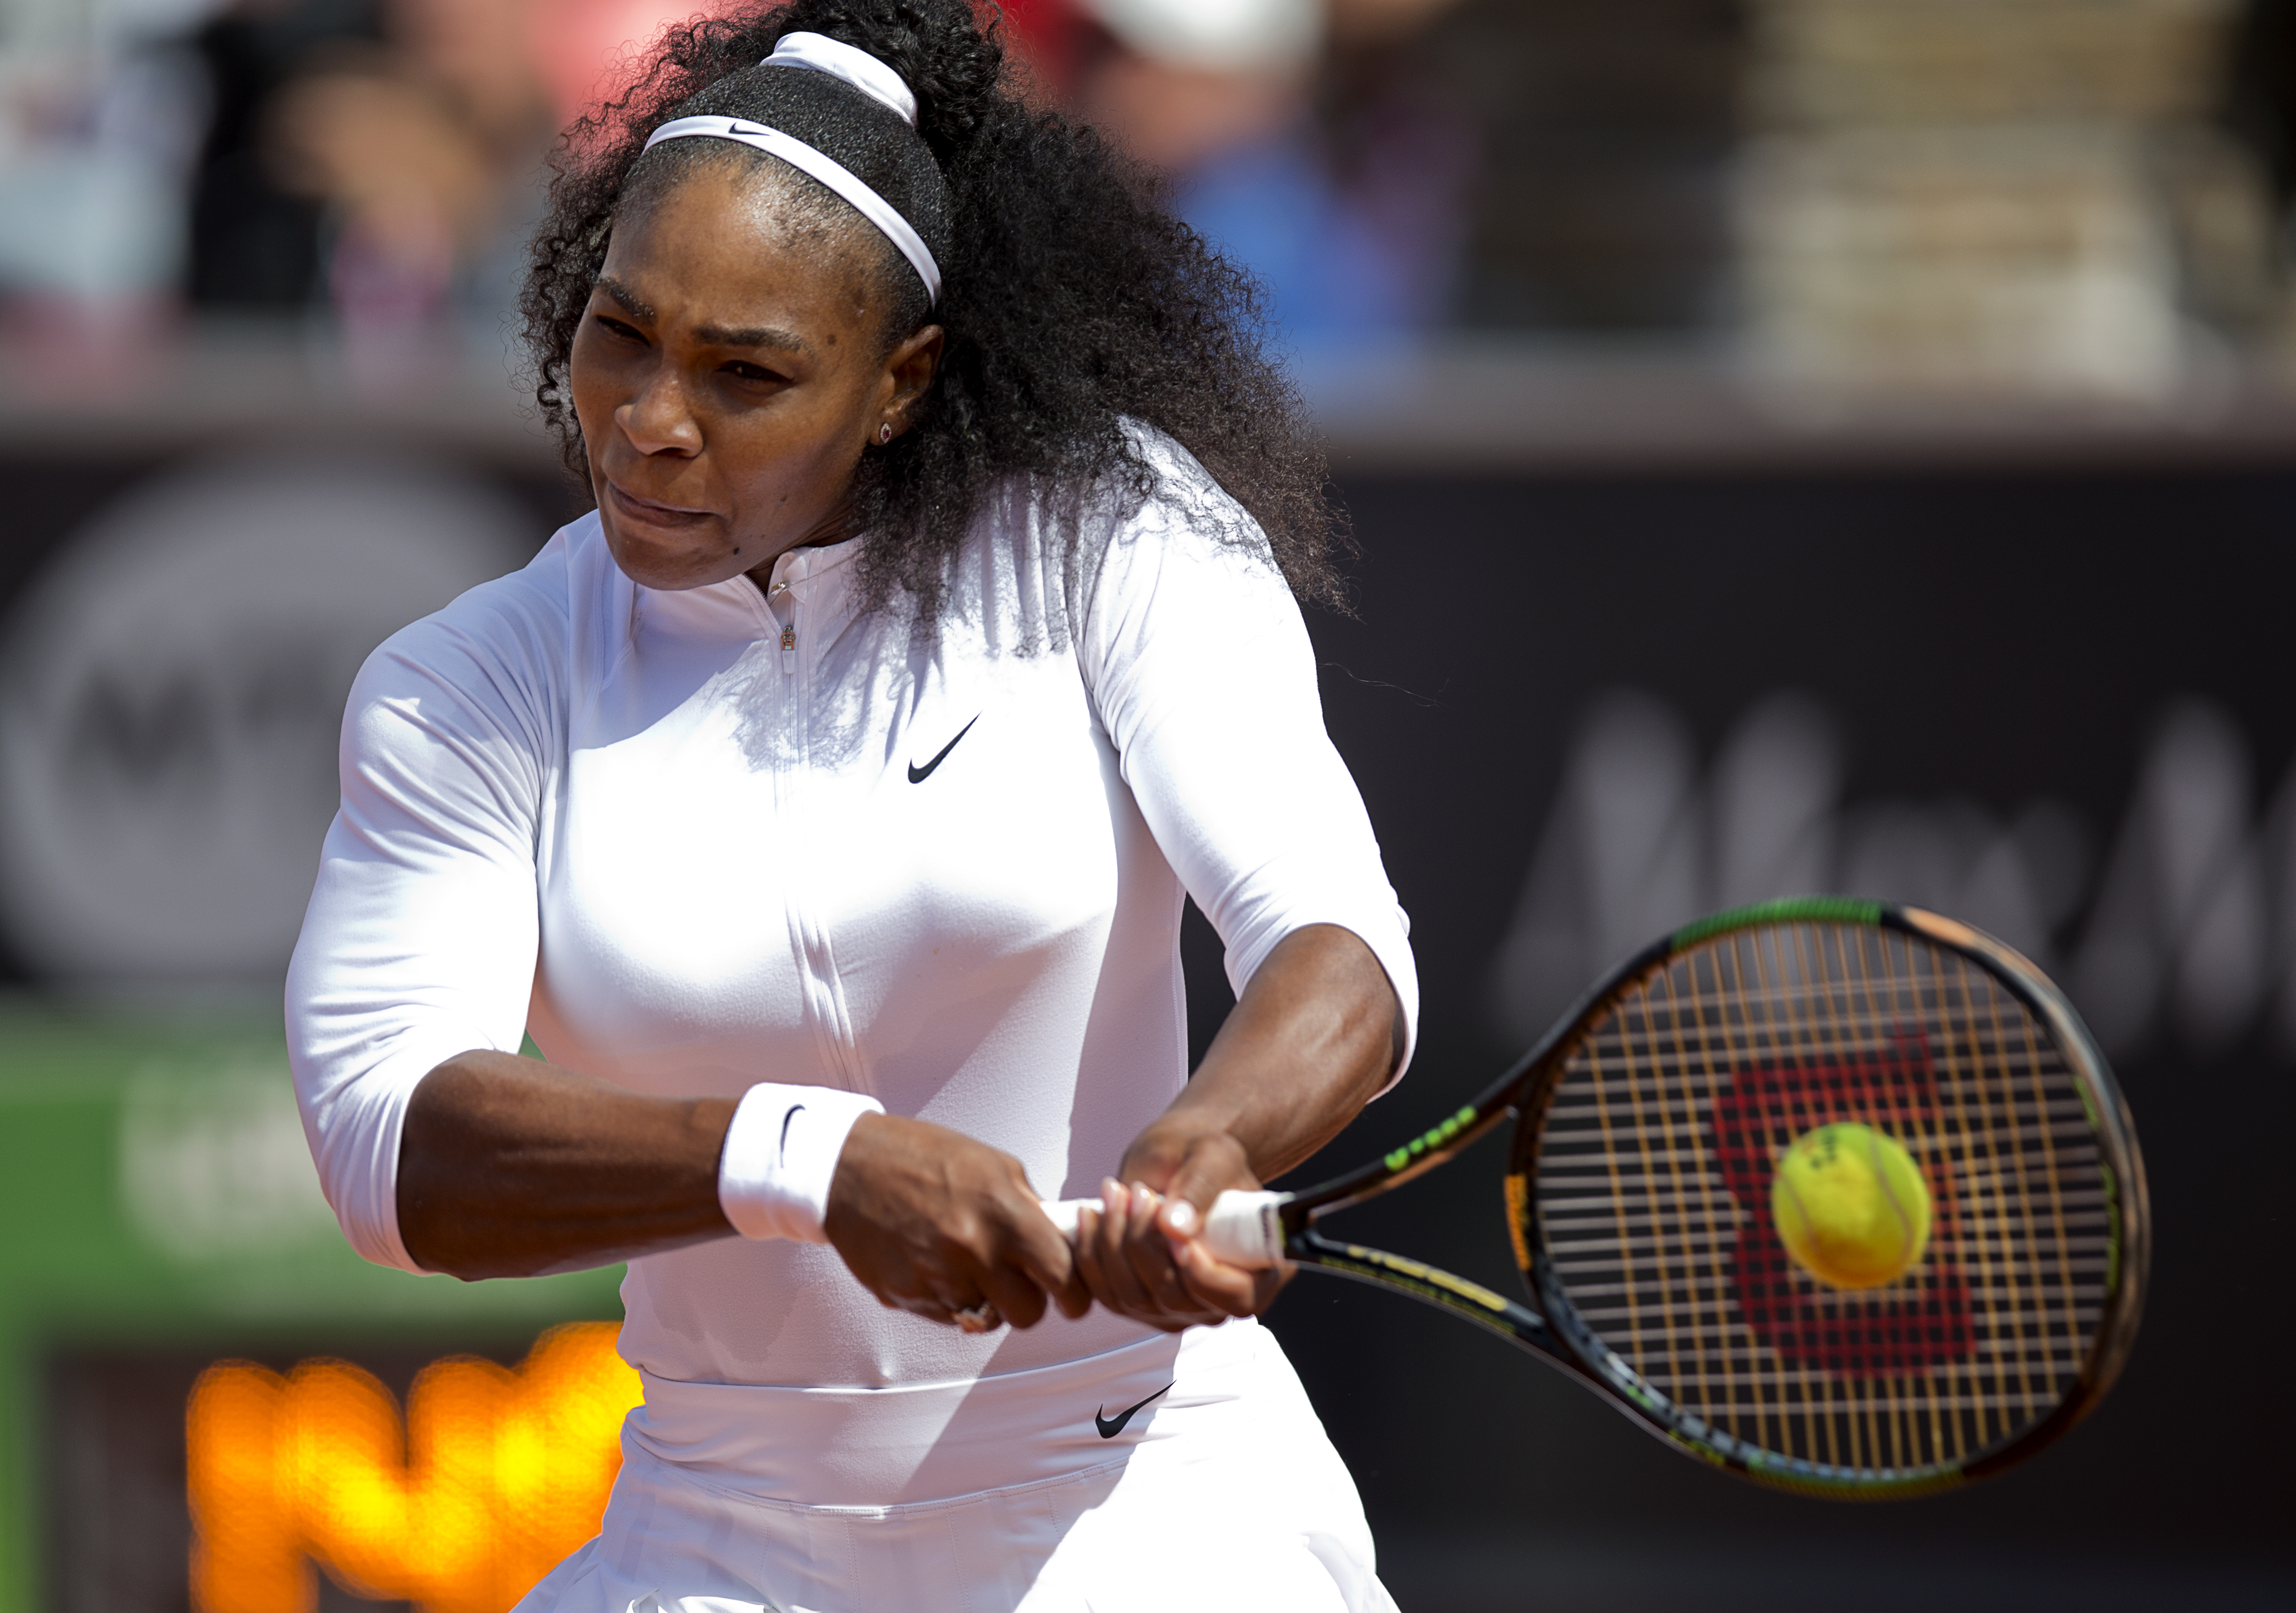 Serena Williams from the US plays her opening match against Ysaline Bonaventure of Belgium,  at the Swedish Open in Bastad, Sweden, Wednesday, July 15, 2015. Williams won 62, 61. (Adam Ihse, TT News Agency via AP)